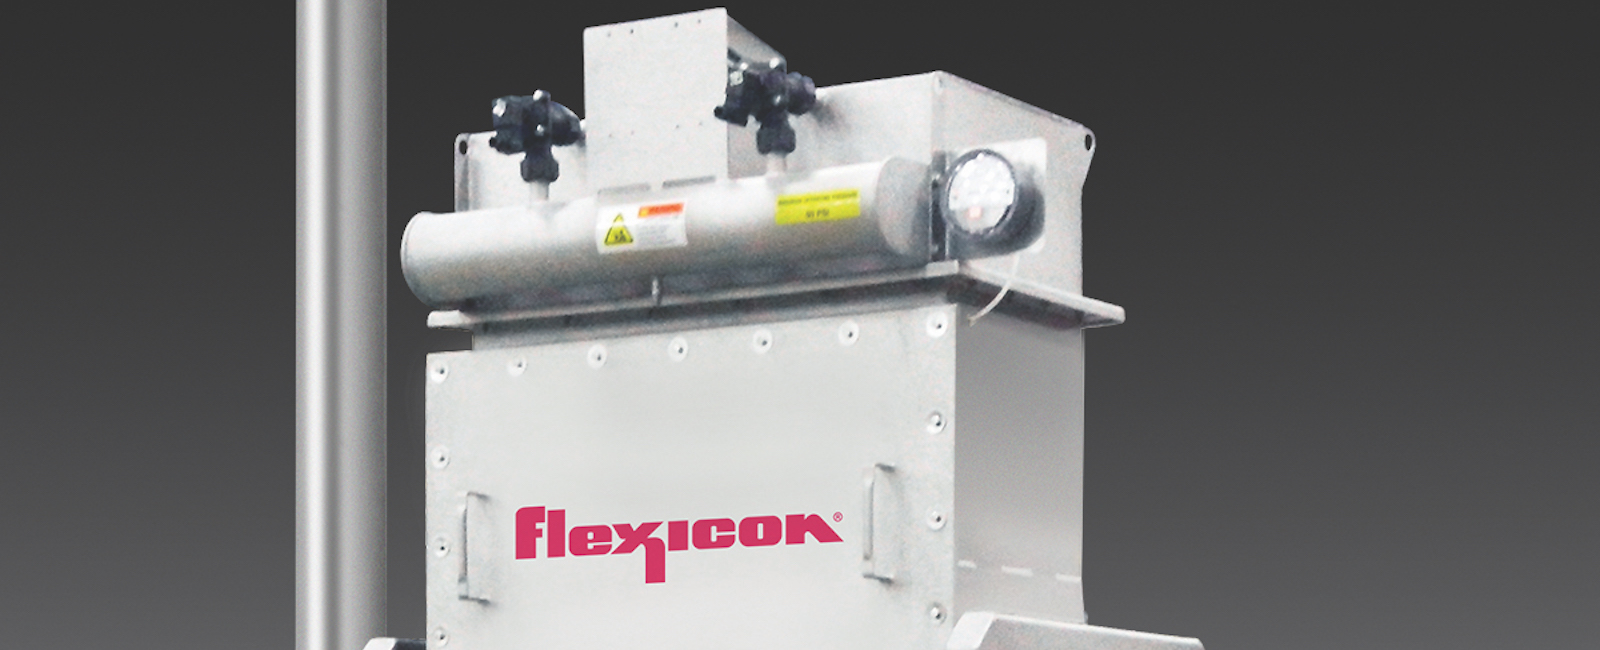 Flexicon: Stand-Alone Dust Collector removes Airborne Dust from Upstream Processes